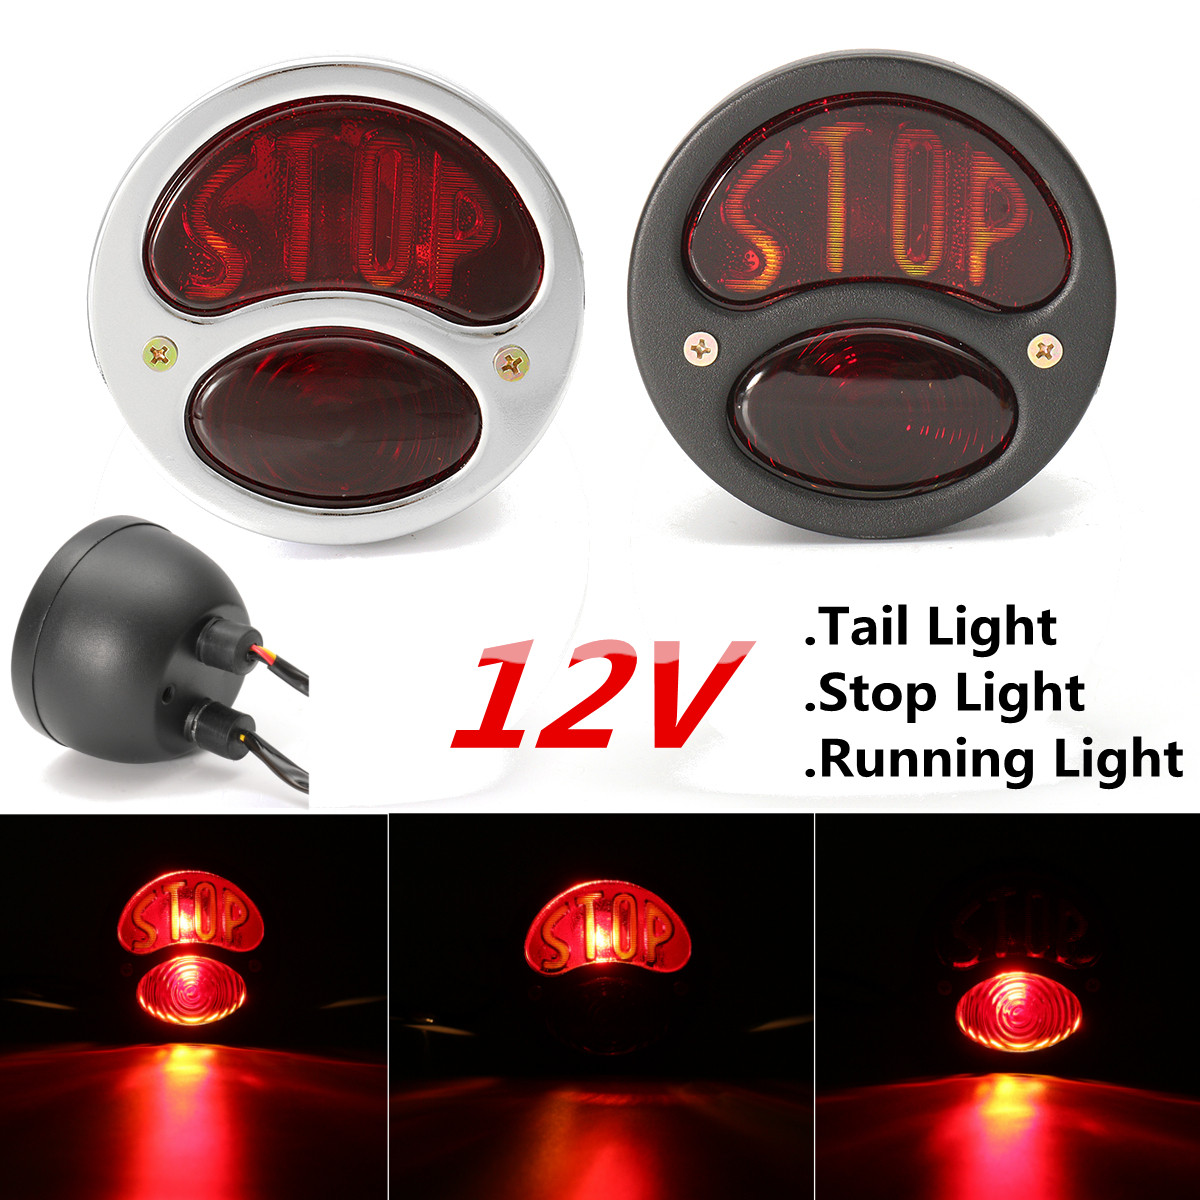 Motorcycle Rear Tail Brake Stop Light Running Lamp For Harley Cruiser Cafe Racer